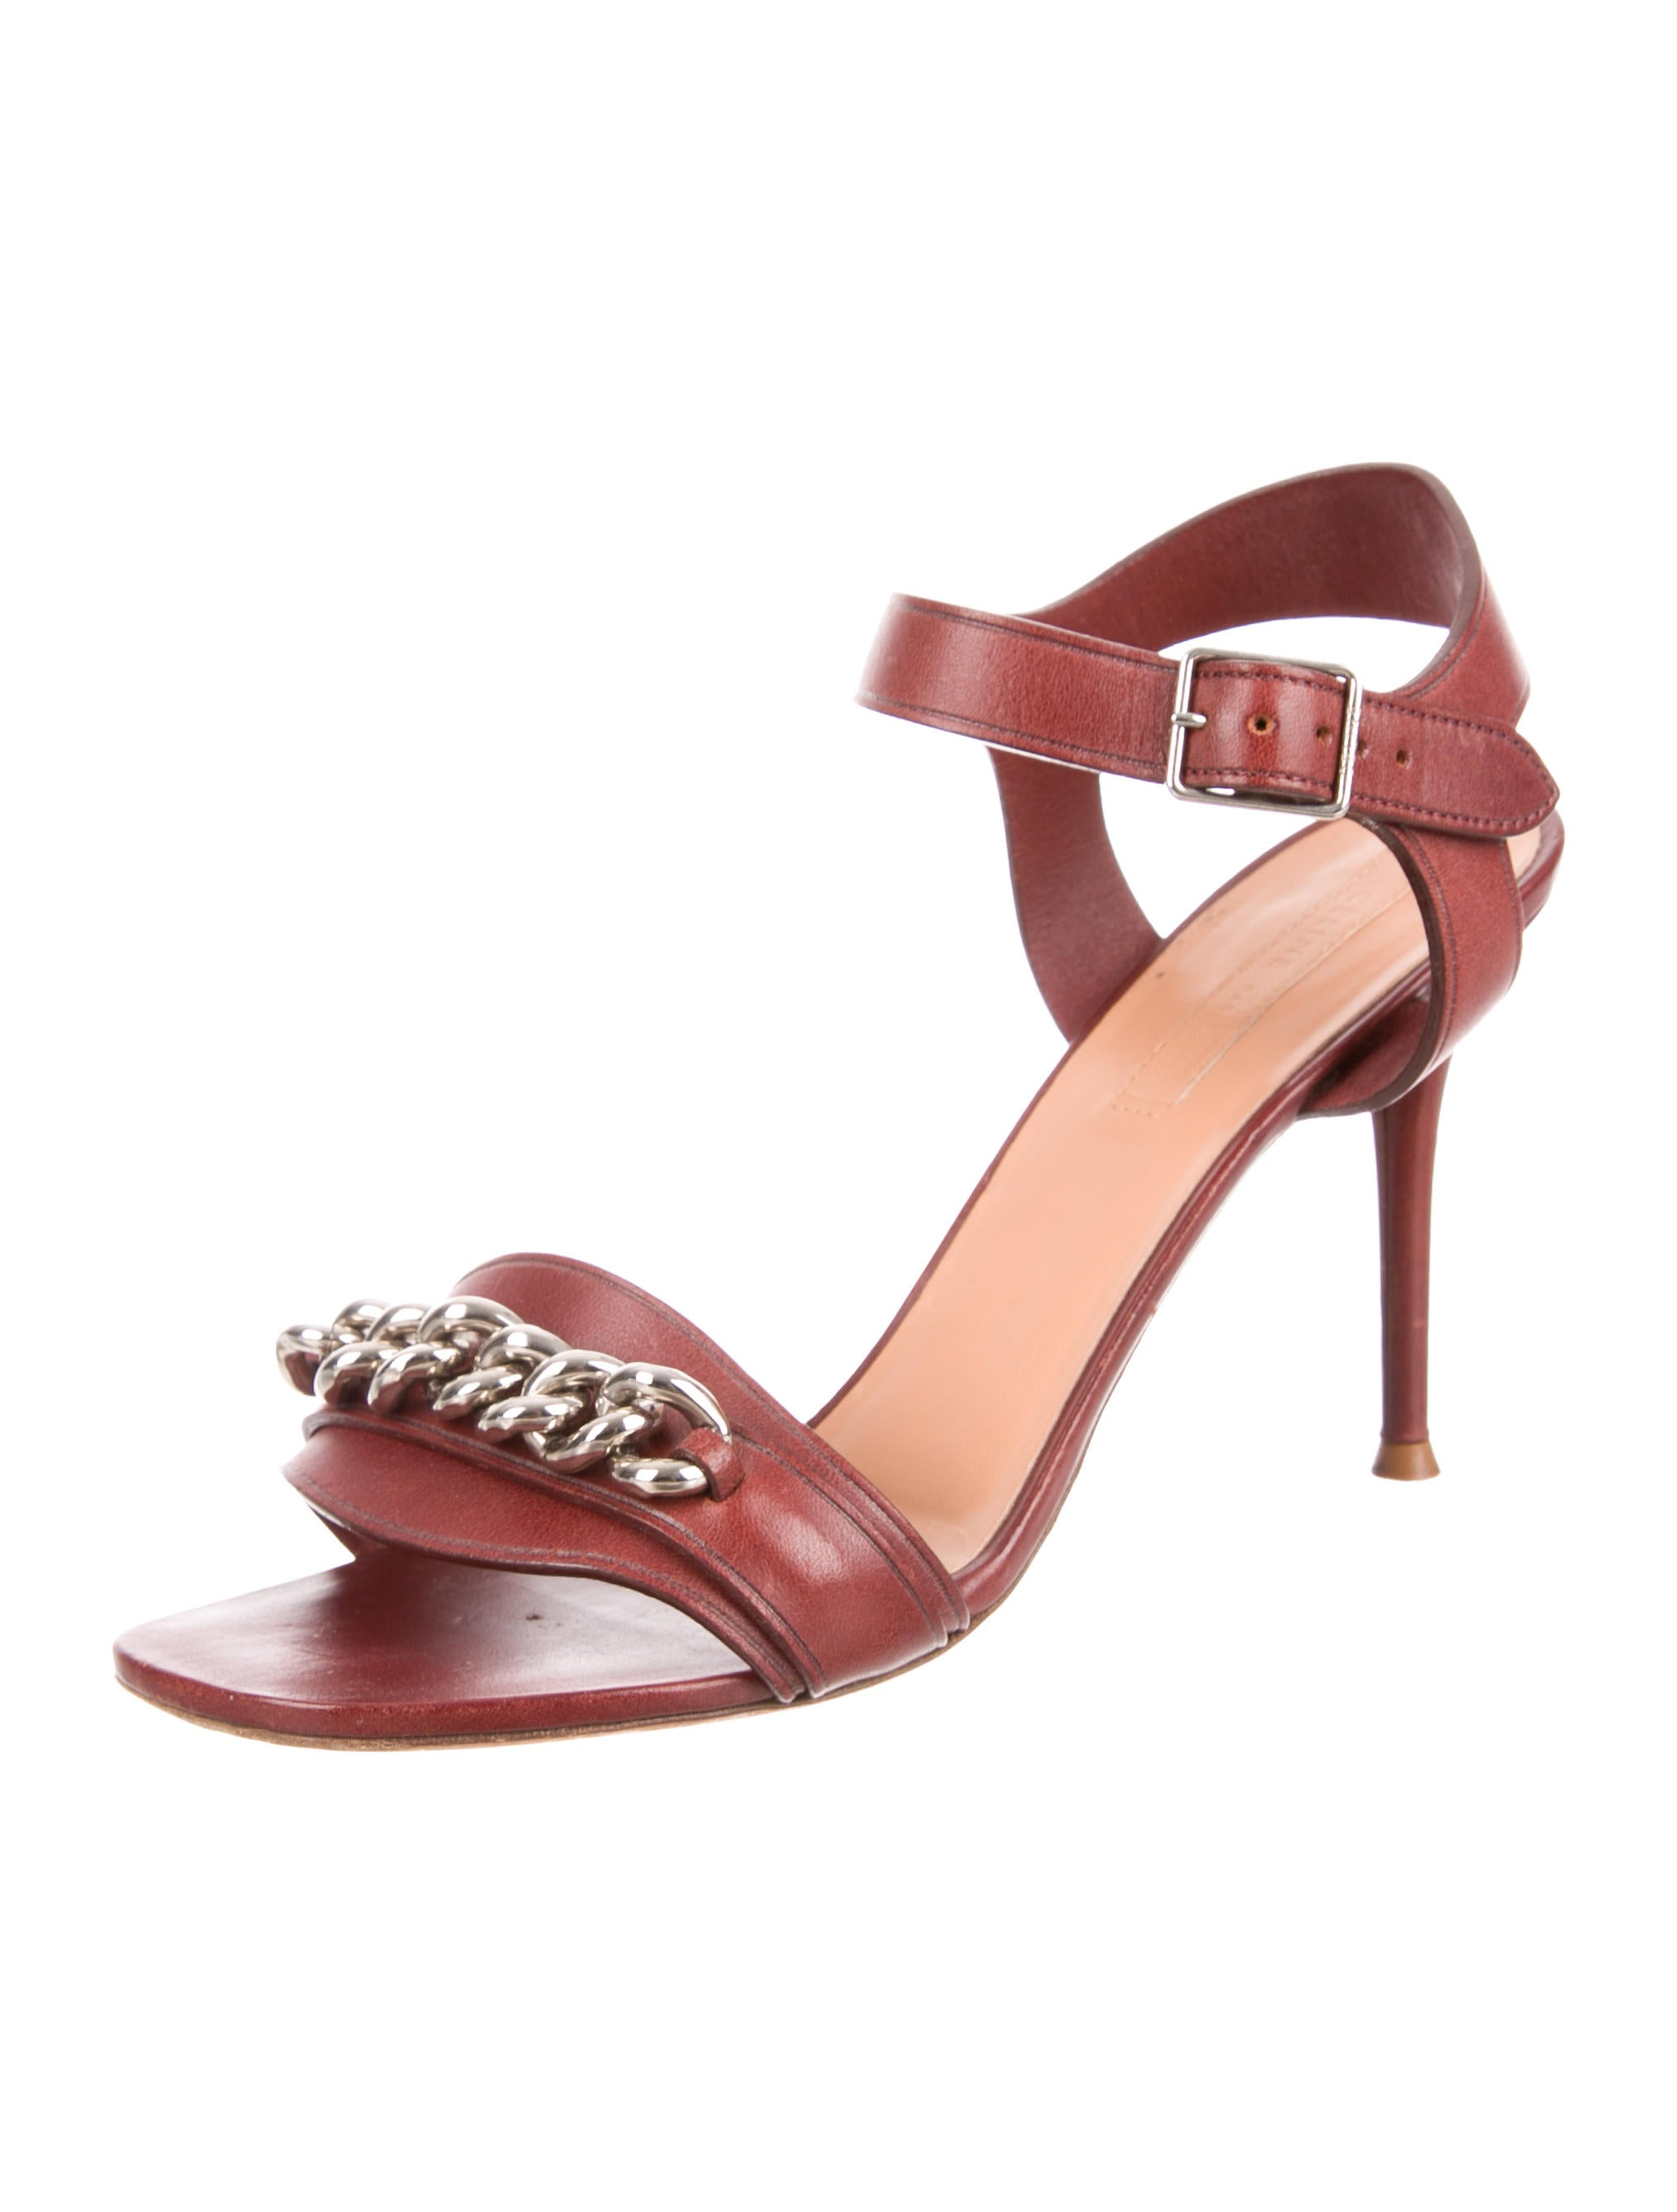 Céline Chain-Embellished Ankle Strap Sandals